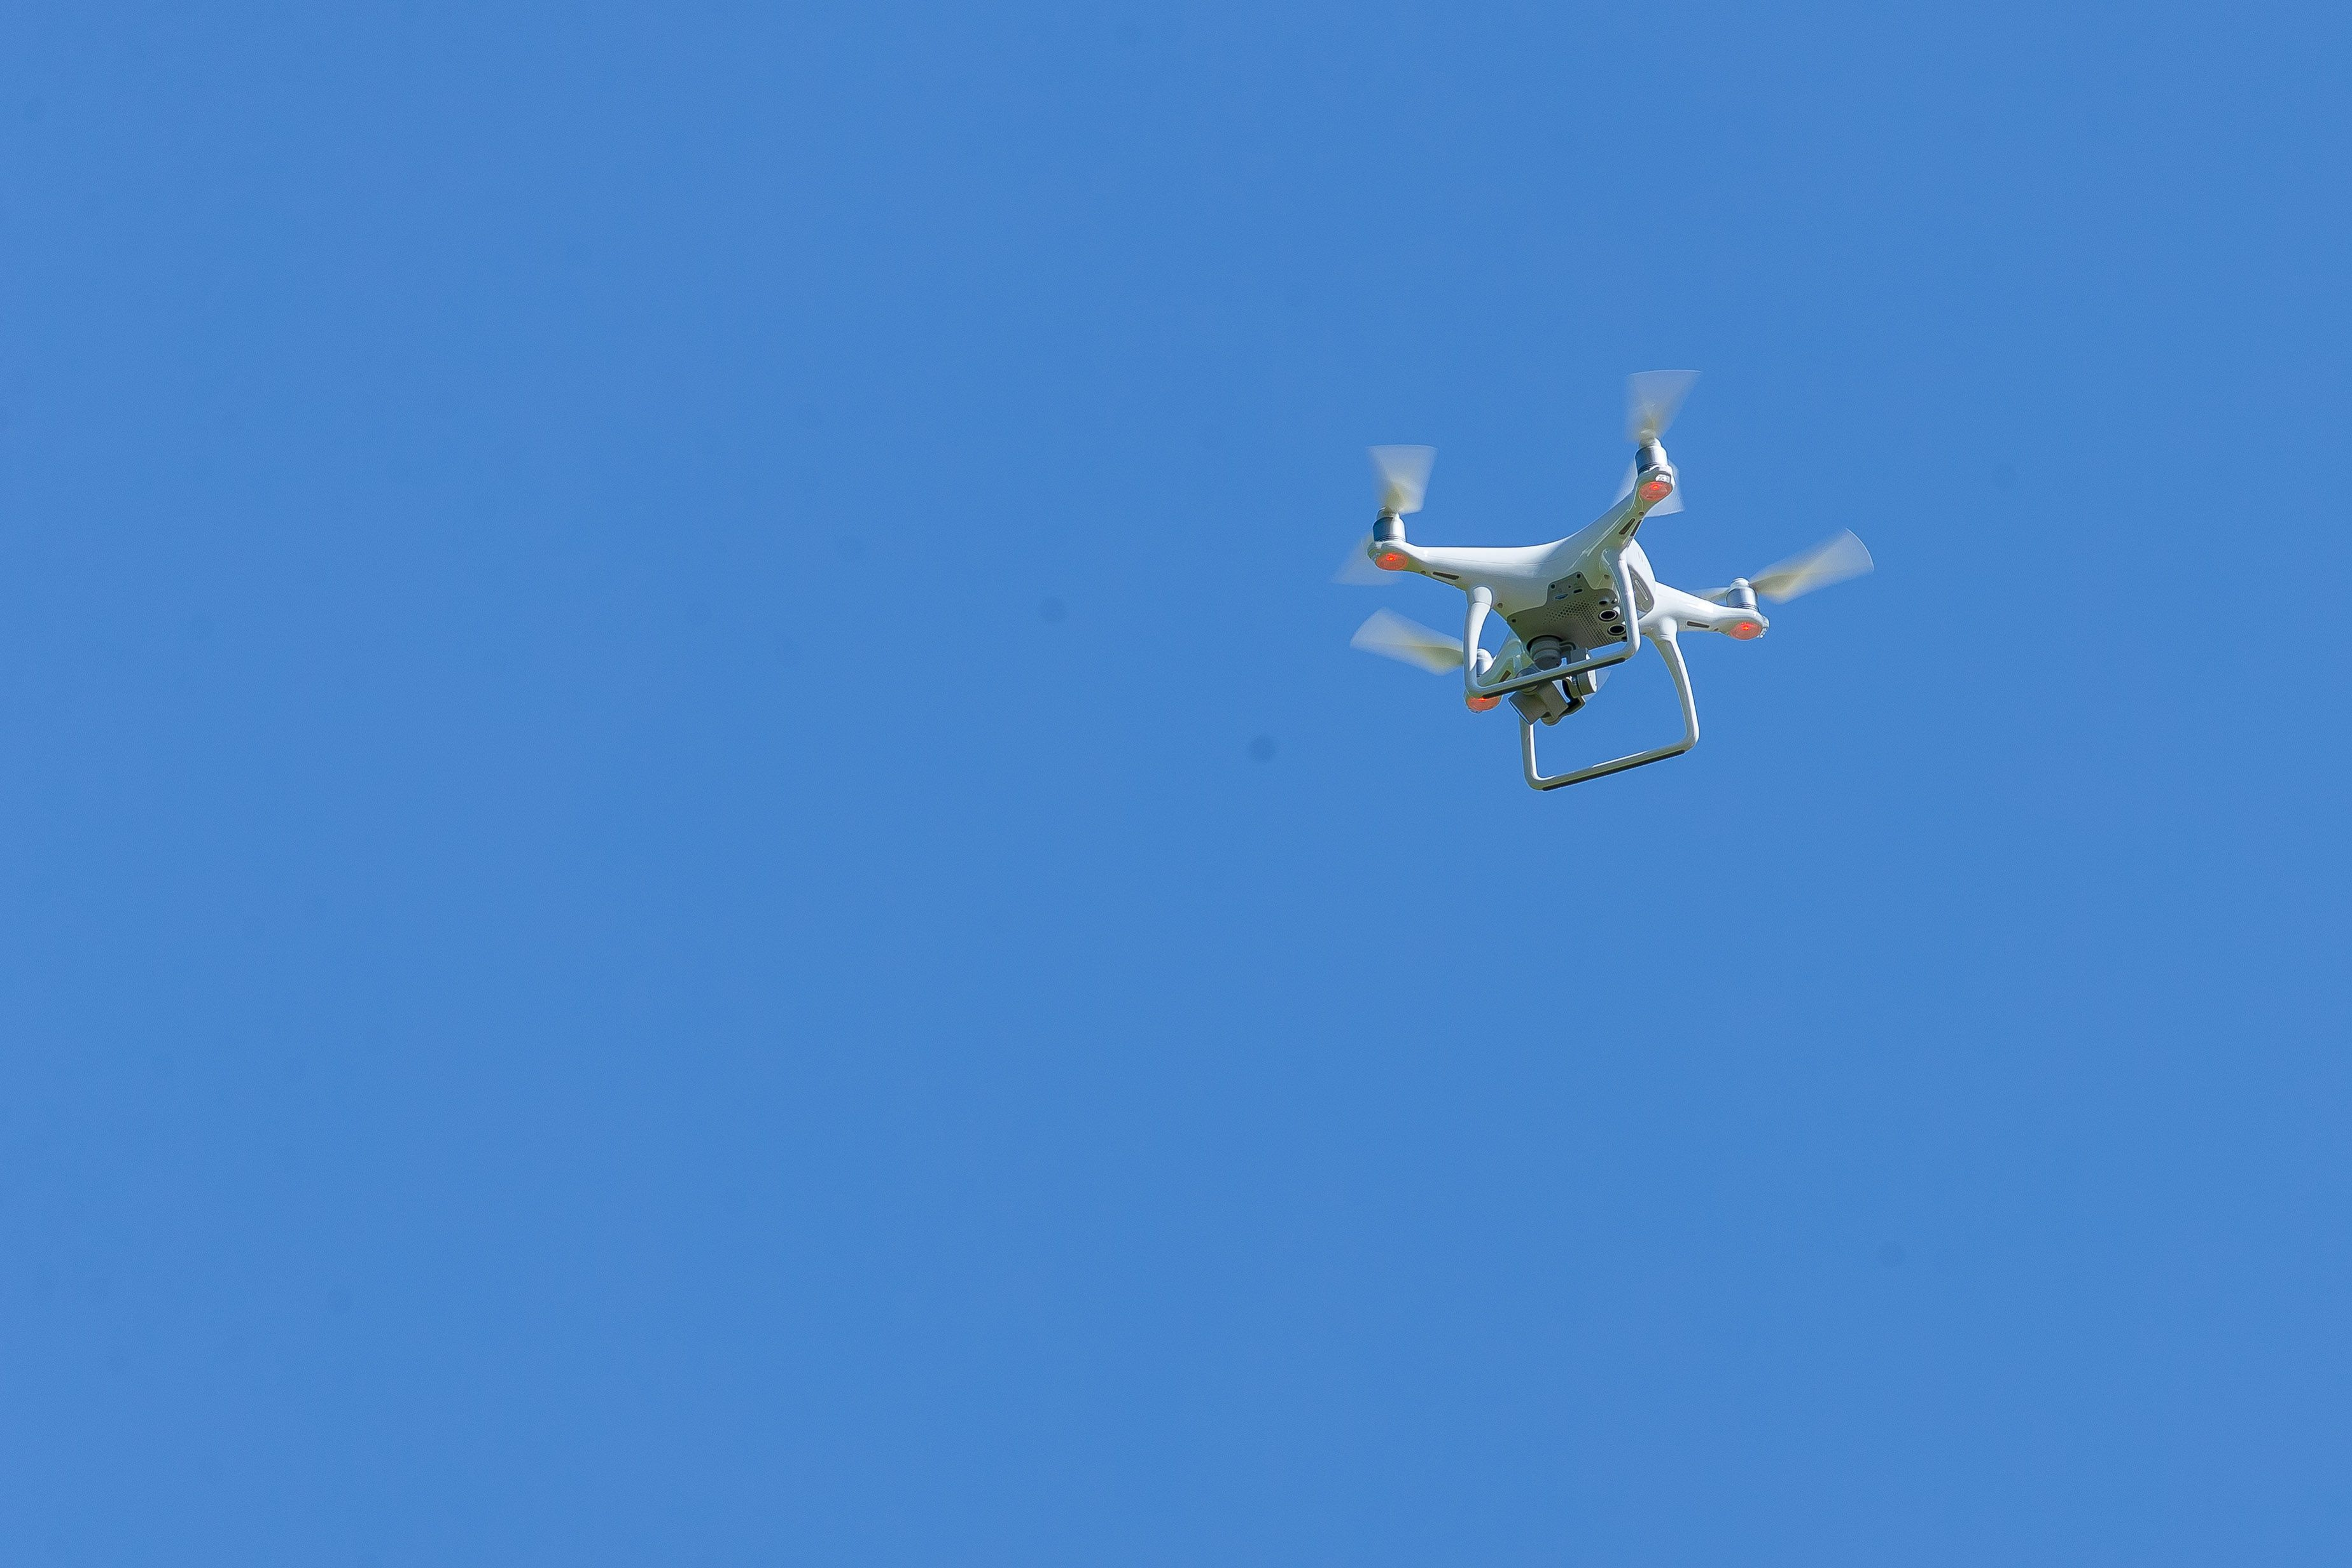 A drone hovering over the crowd